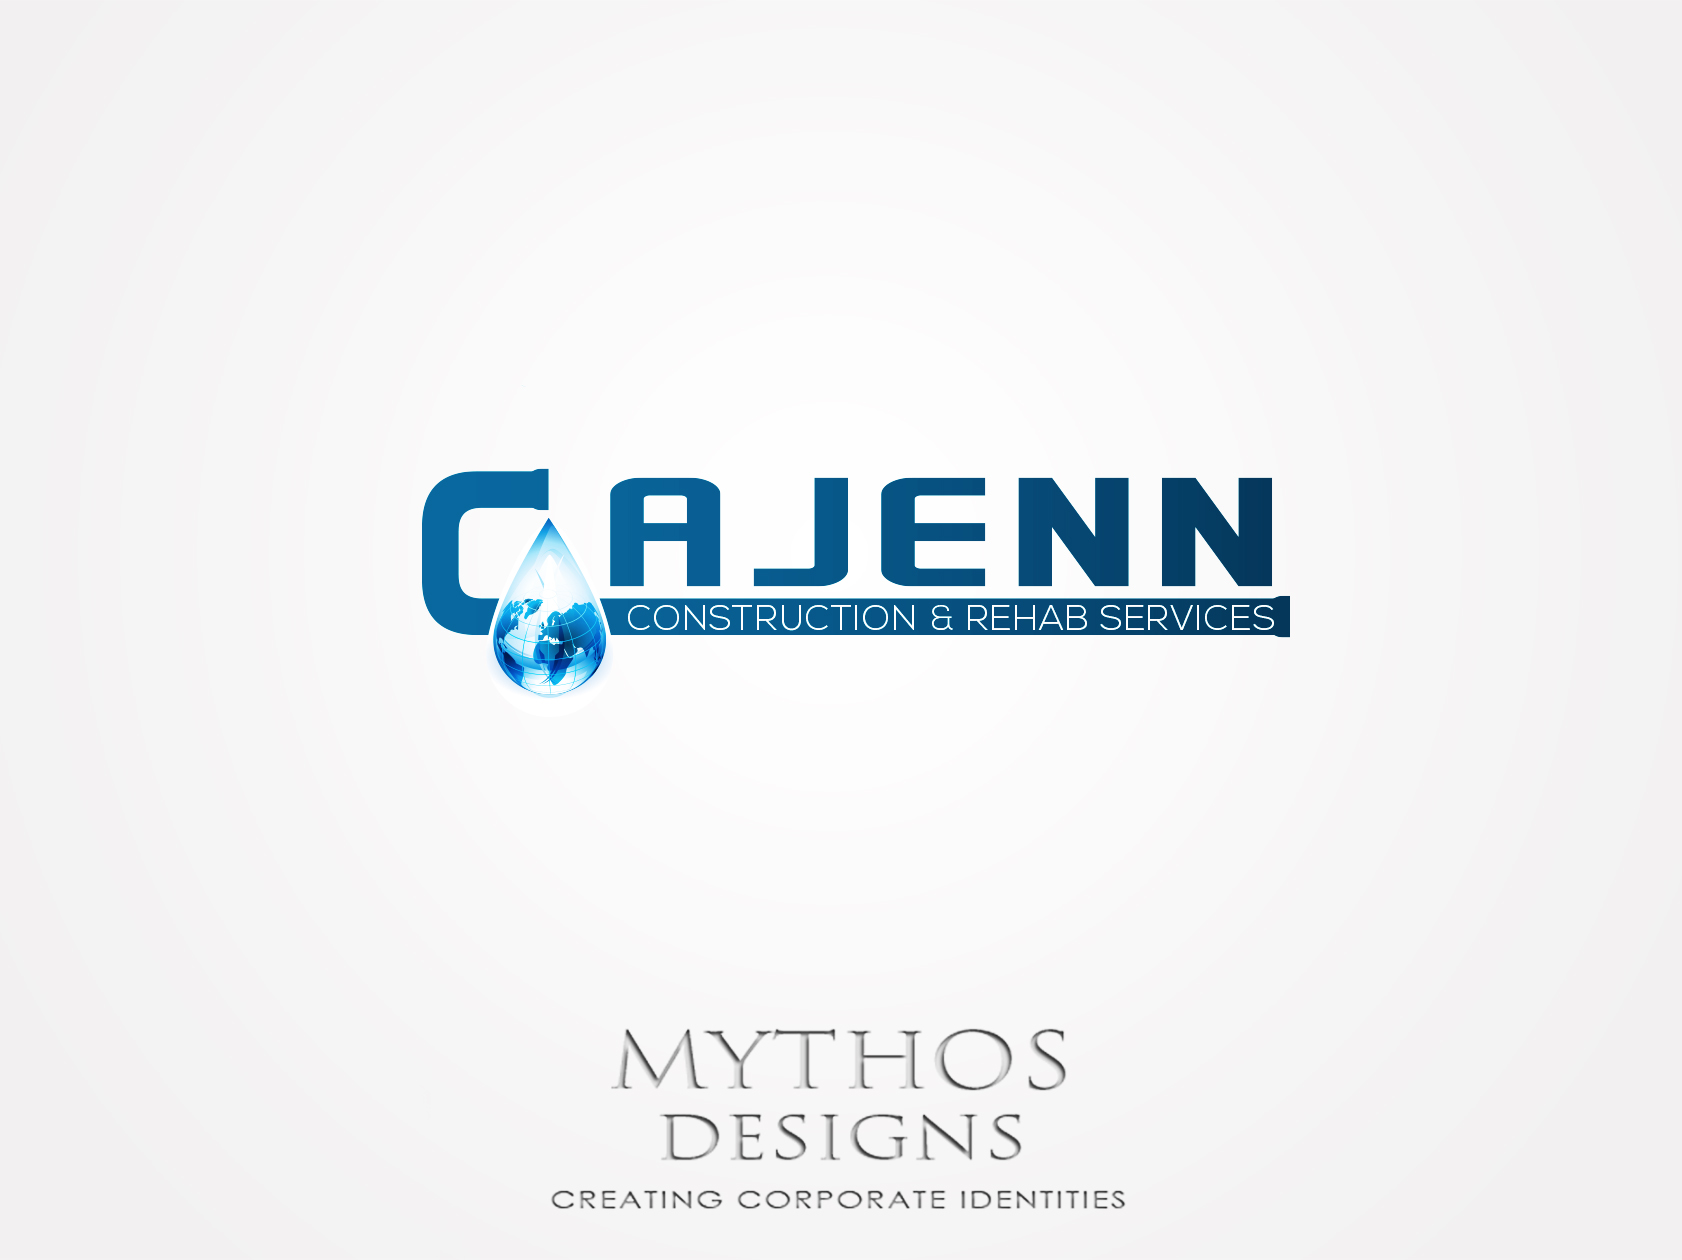 Logo Design by Mythos Designs - Entry No. 189 in the Logo Design Contest New Logo Design for CaJenn Construction & Rehab Services.